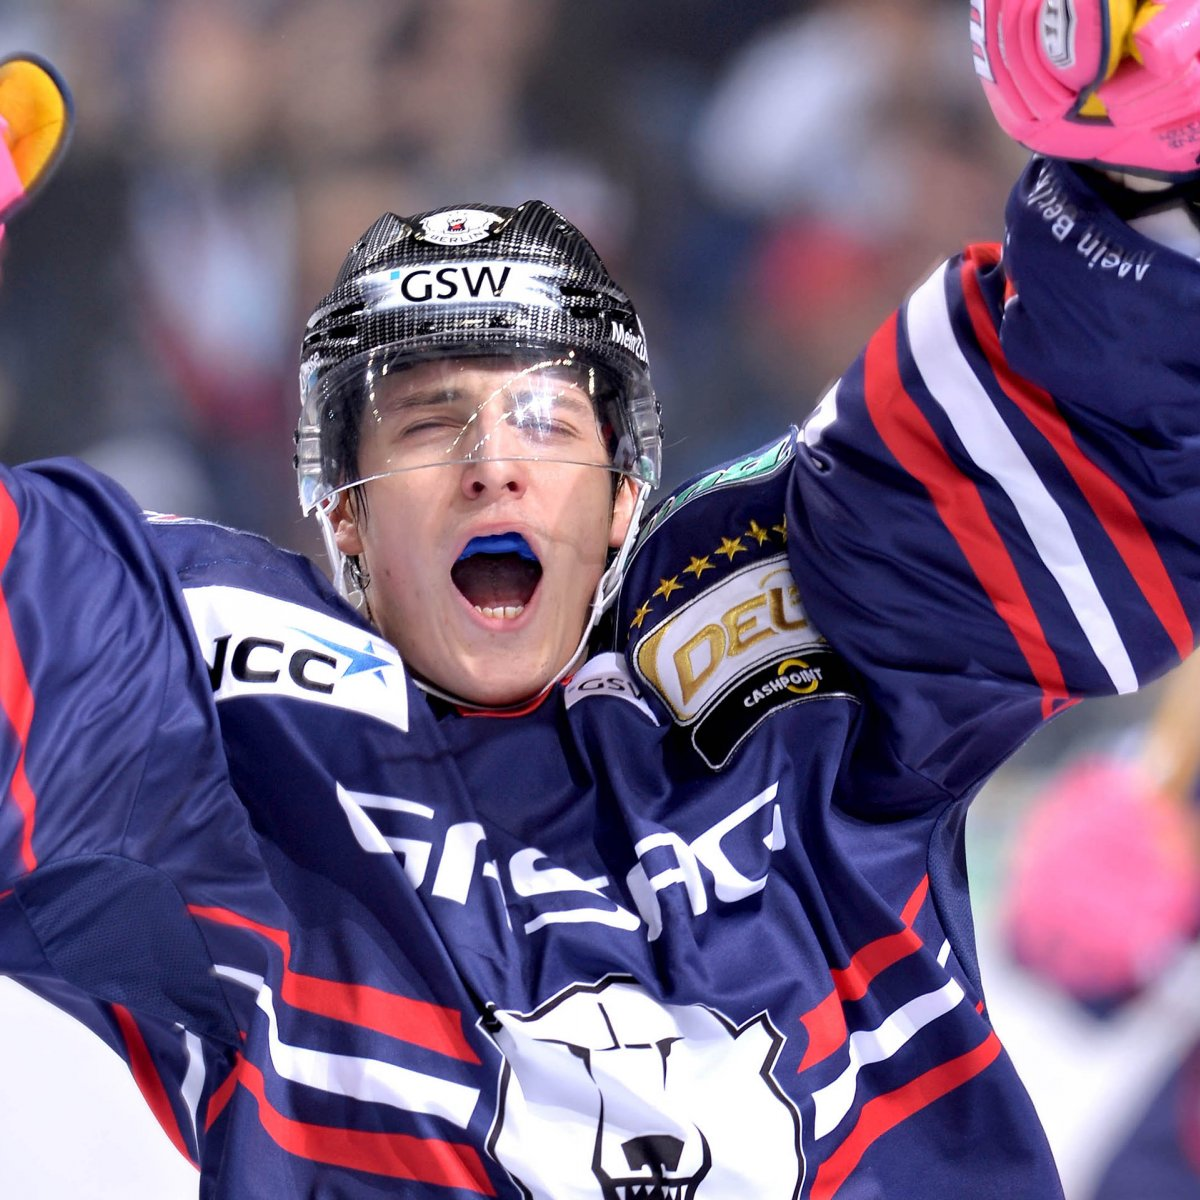 Eisbaren player celebrating on the ice